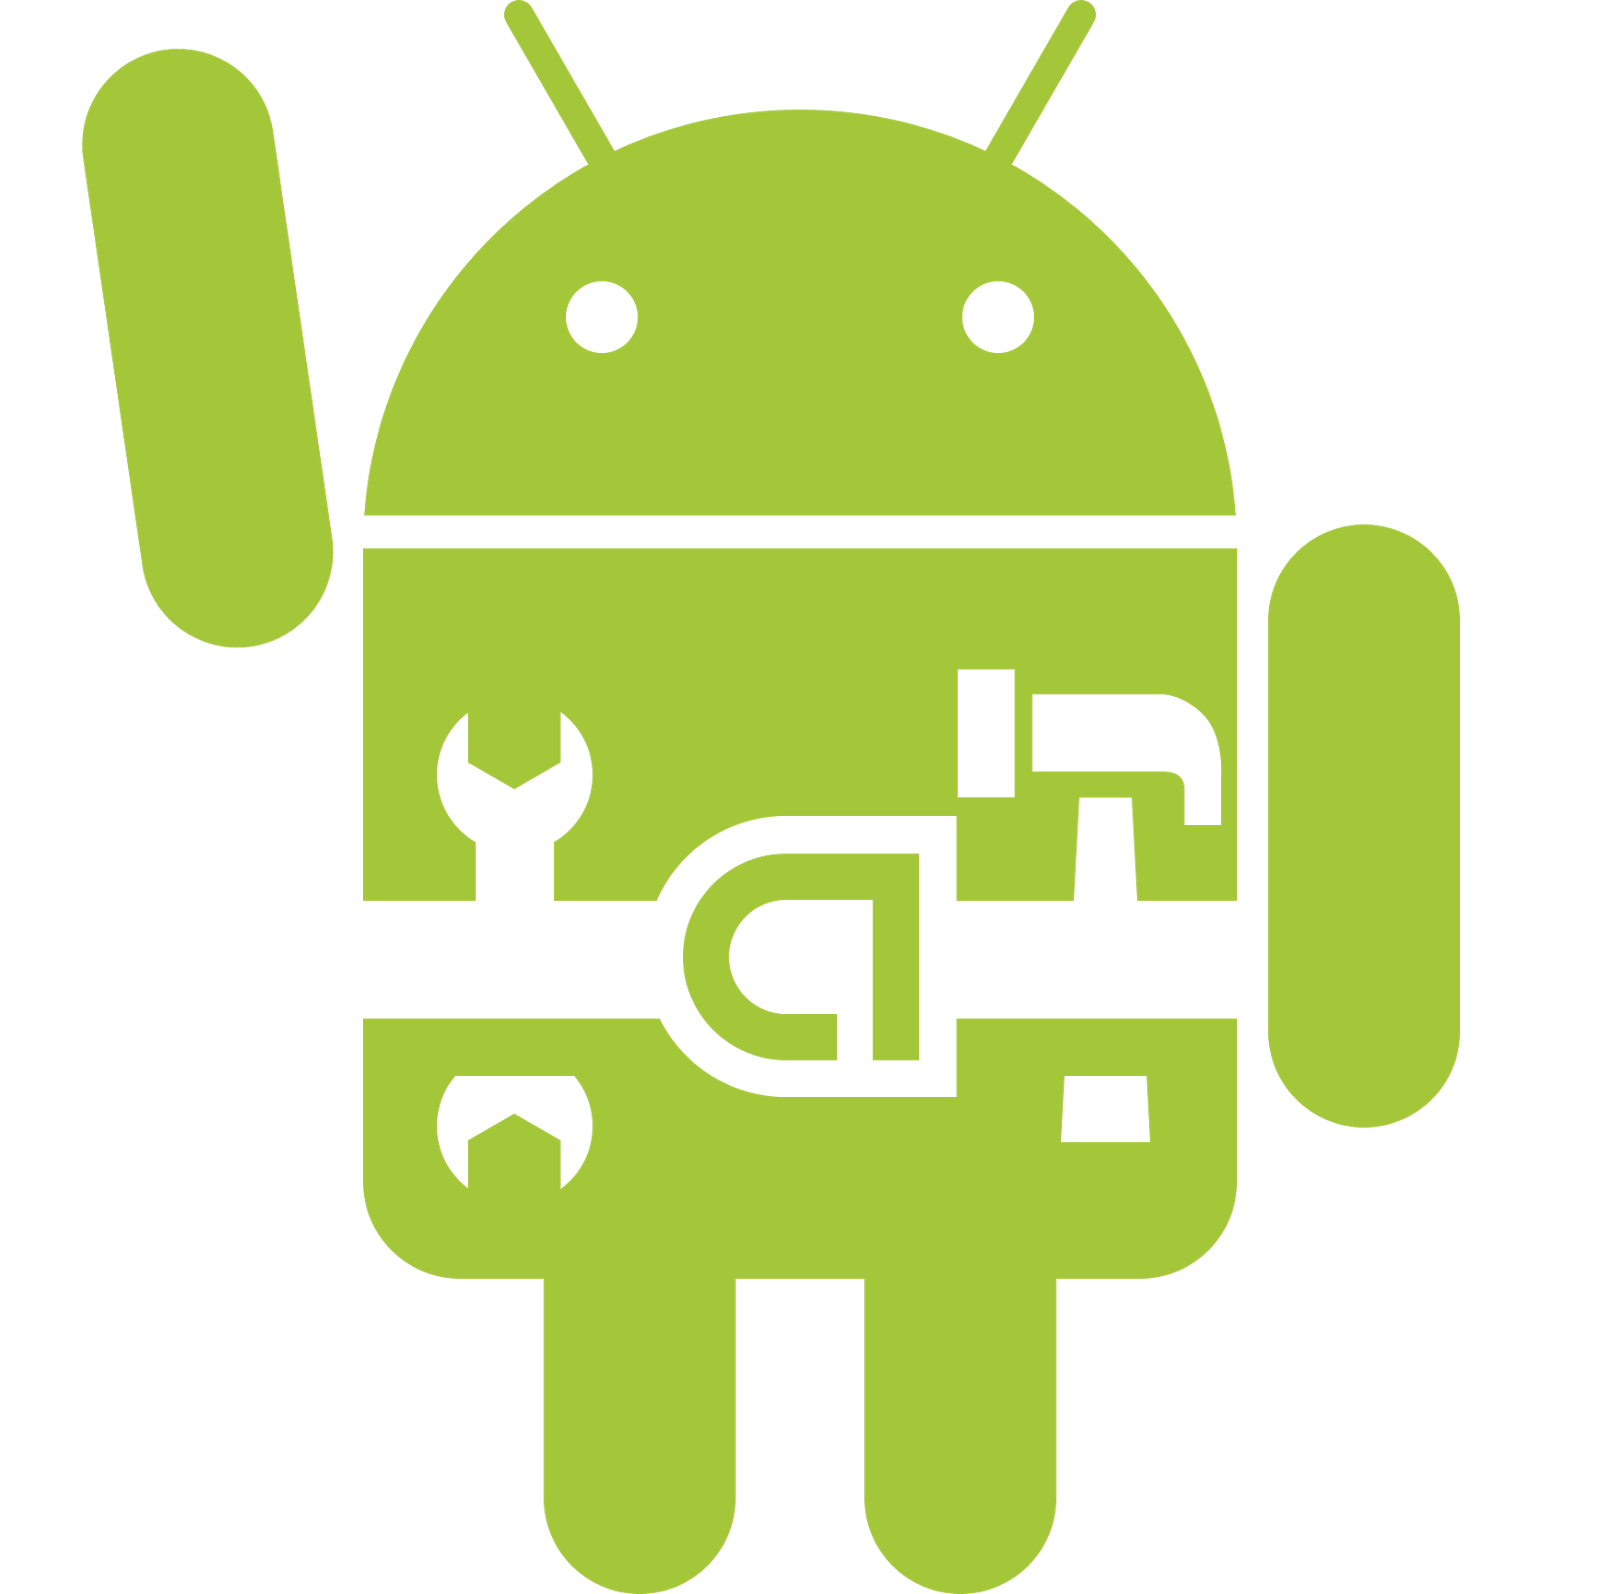 Android image png. Best ways to fix